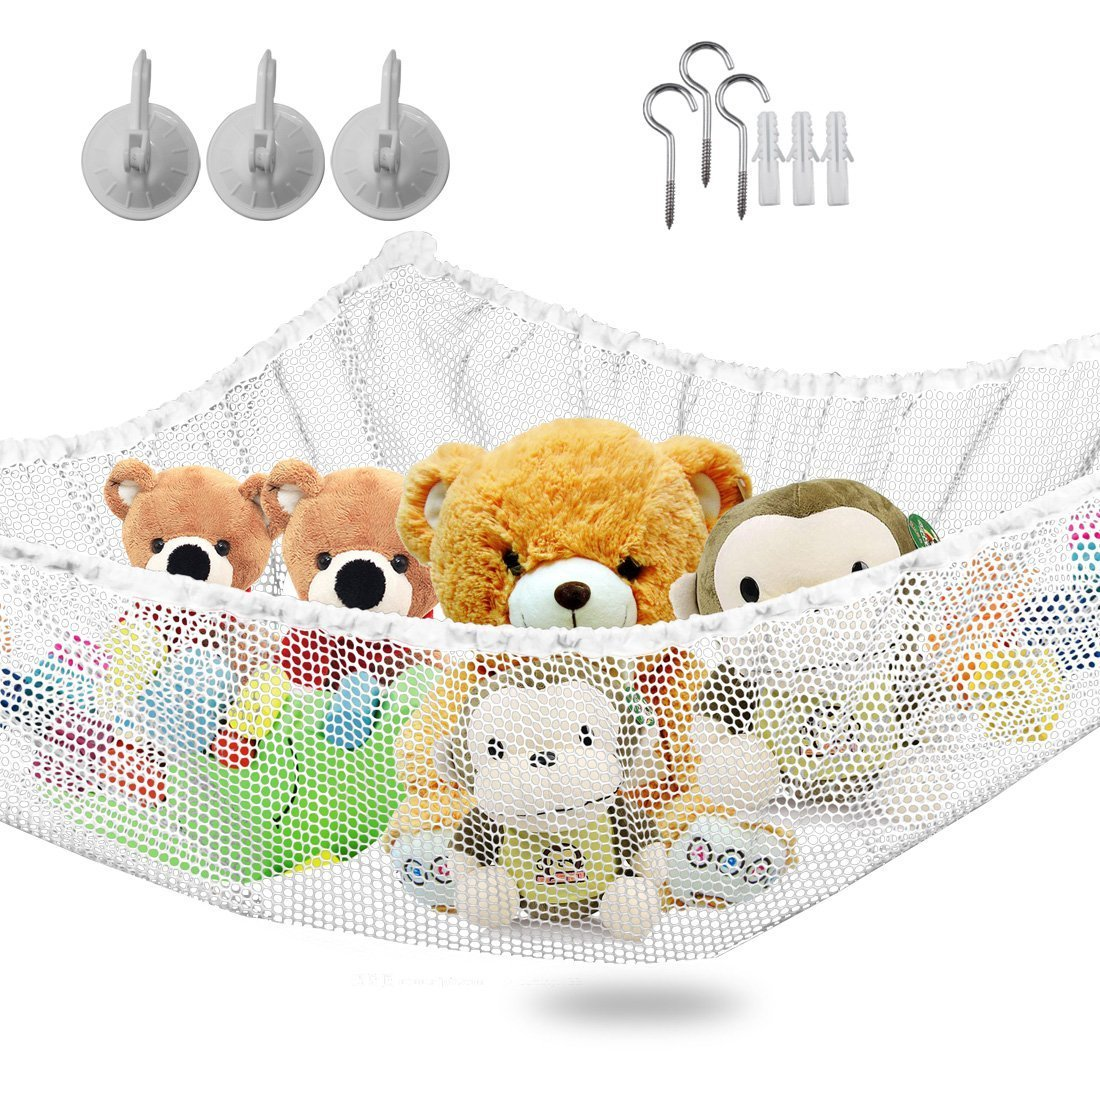 IvyH Large Toy Hammock - Stuffed Animals And Kids Toy Organizer Storage Net Hanging Corner Wall,Easy To Install,55''x35''x35''